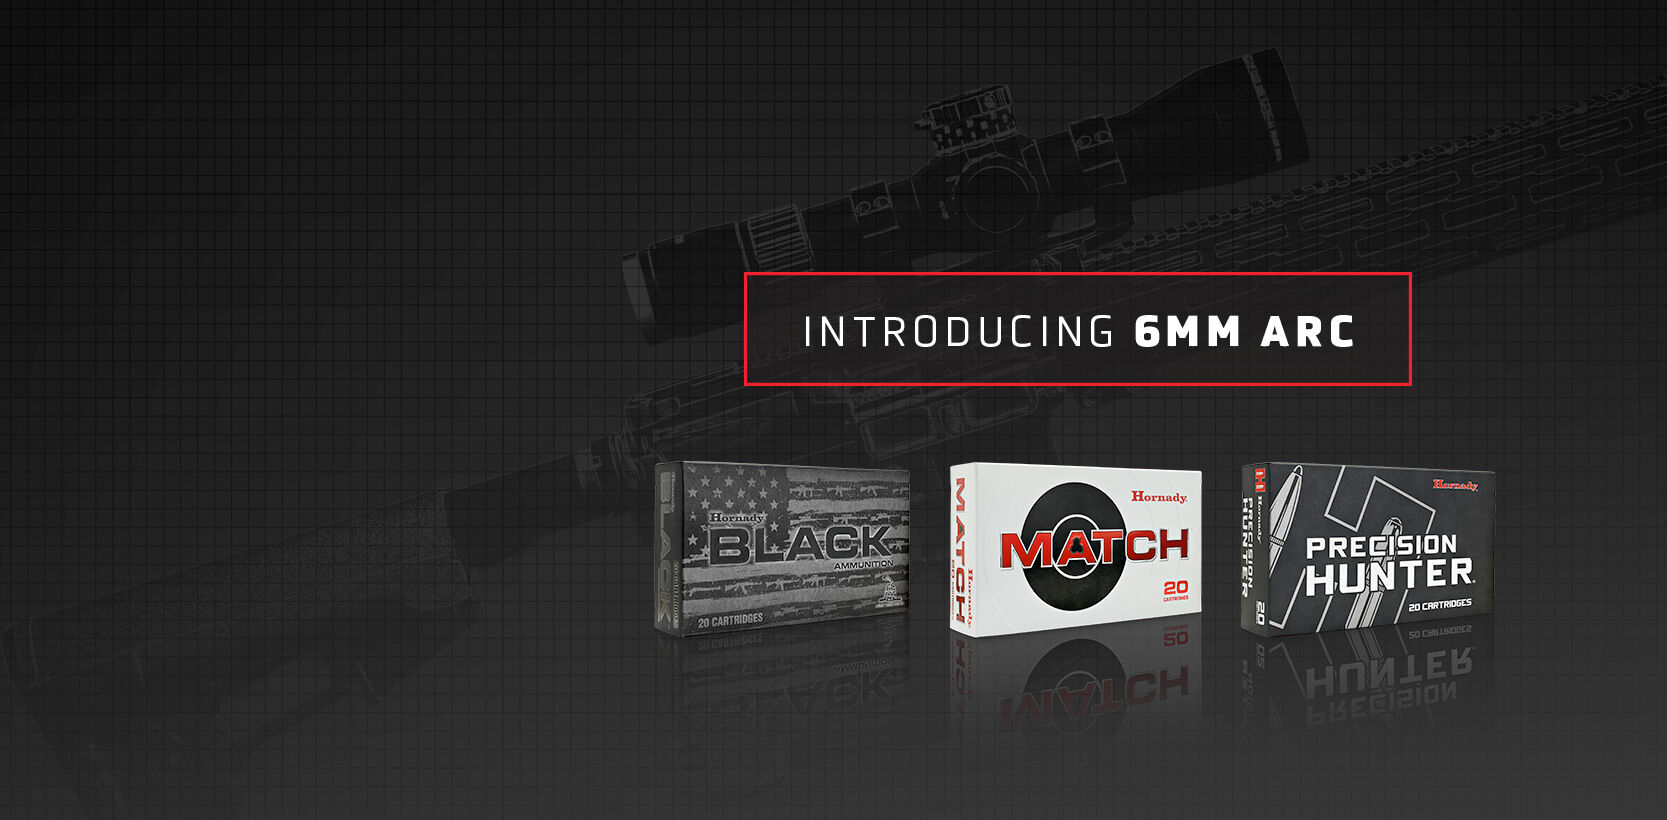 Slide number 5 6mm ARC(Advanced Rifle Cartridge) The new 6mm ARC utilizes efficient, high BC bullets to deliver unprecedented performance from a compact platform. The AR-15 has never had it this good! Find Out More